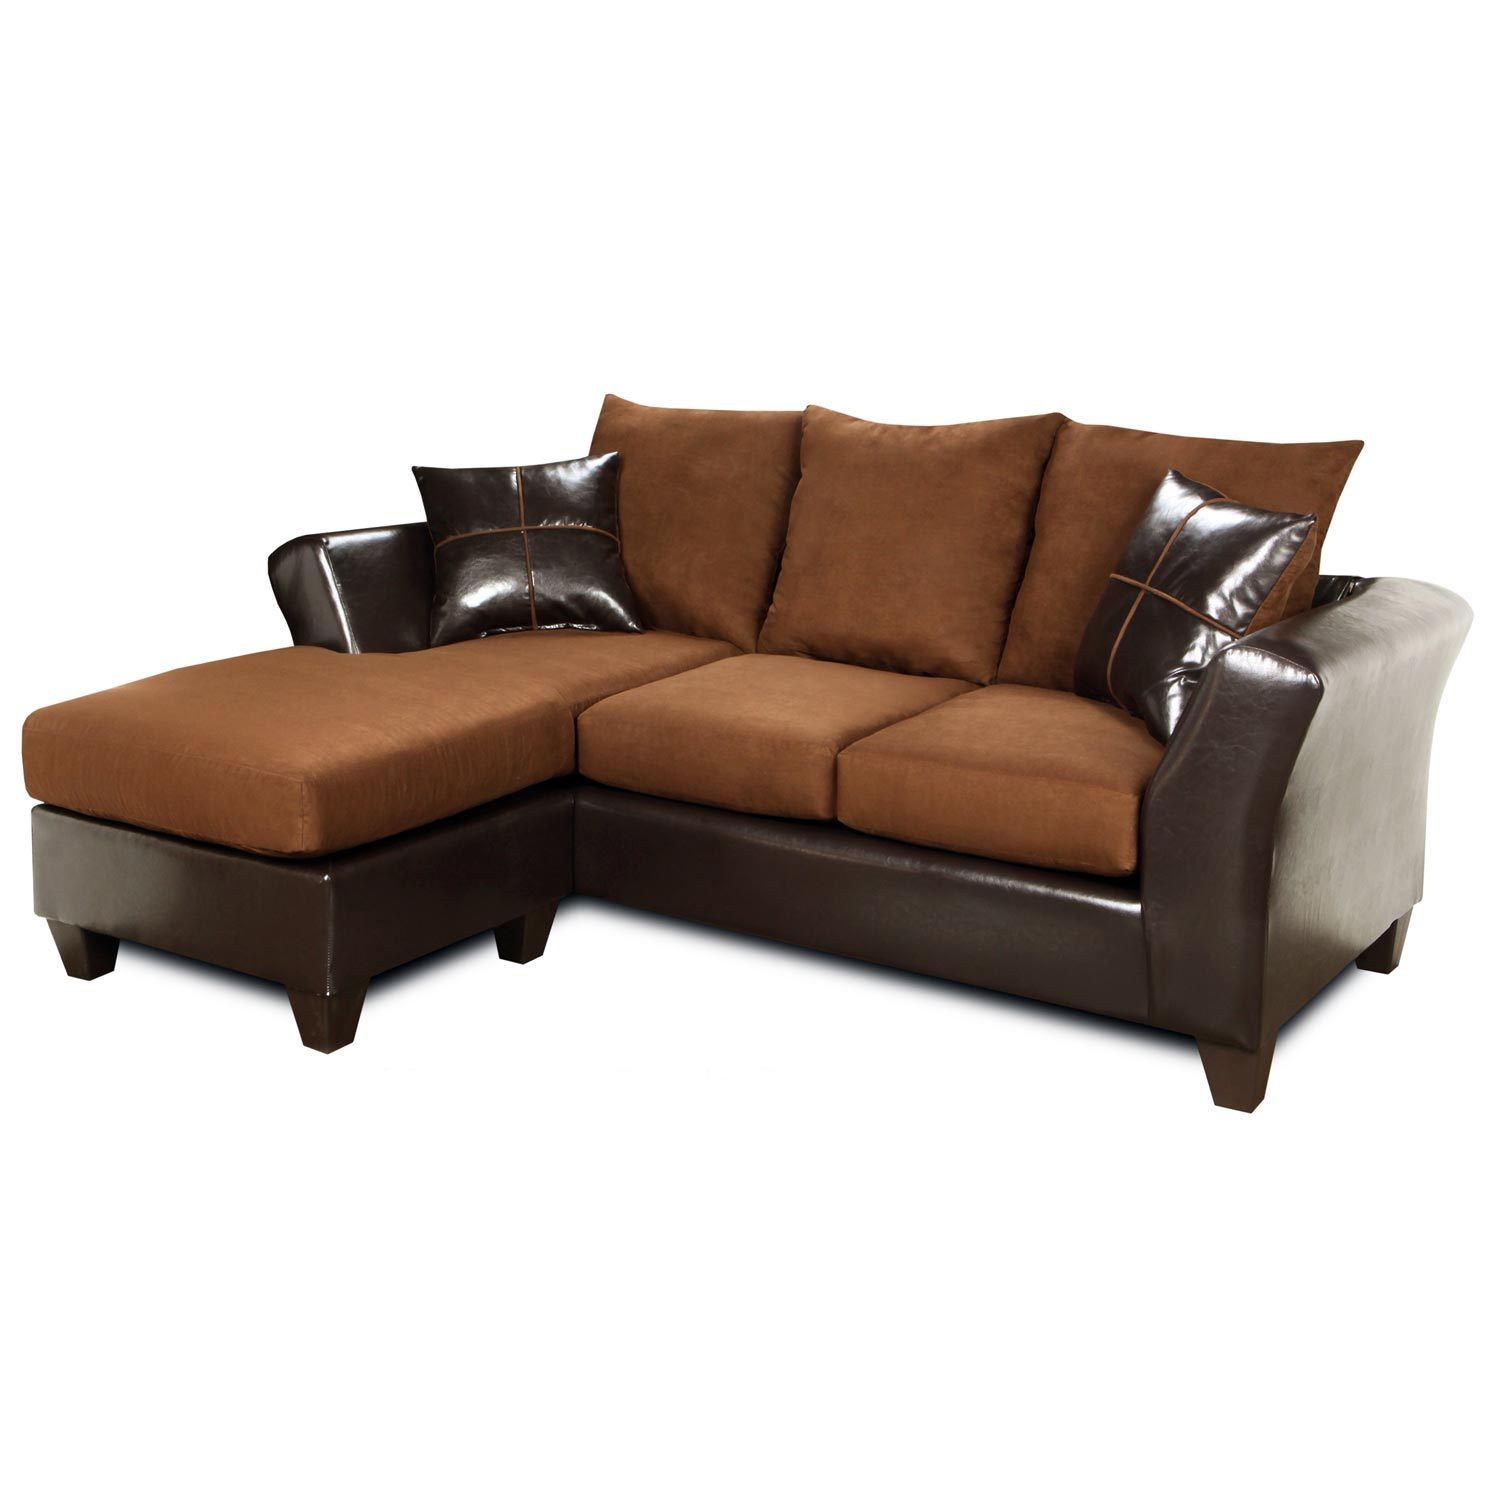 Peyton Sofa Ottoman Chaise Cushion Flat Suede Chocolate Dcg Stores